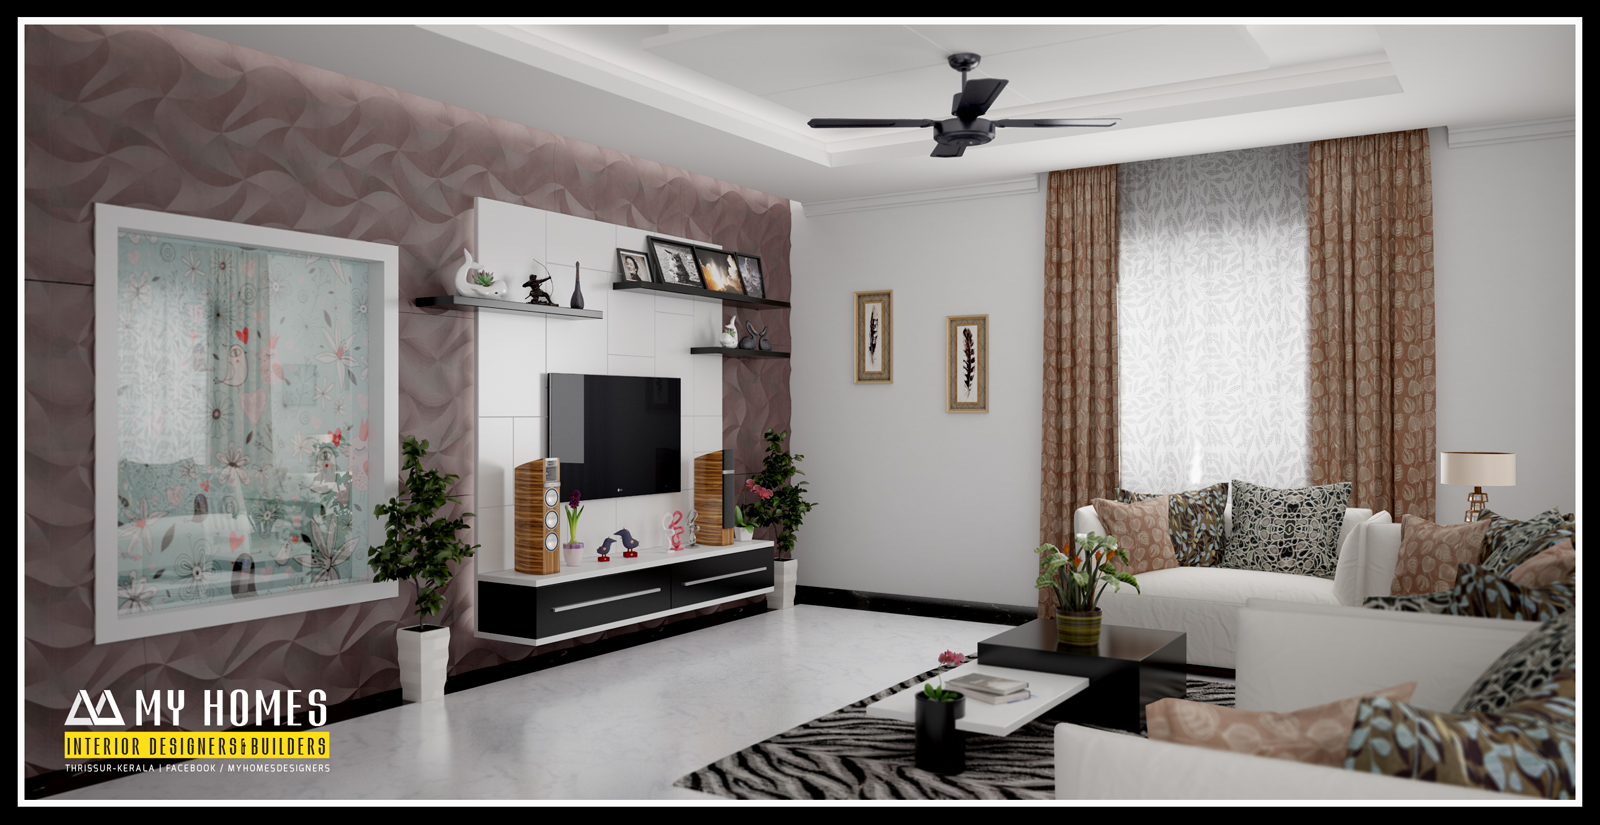 kerala interior design ideas from designing company thrissur kerala interior design ideas from designing company thrissur